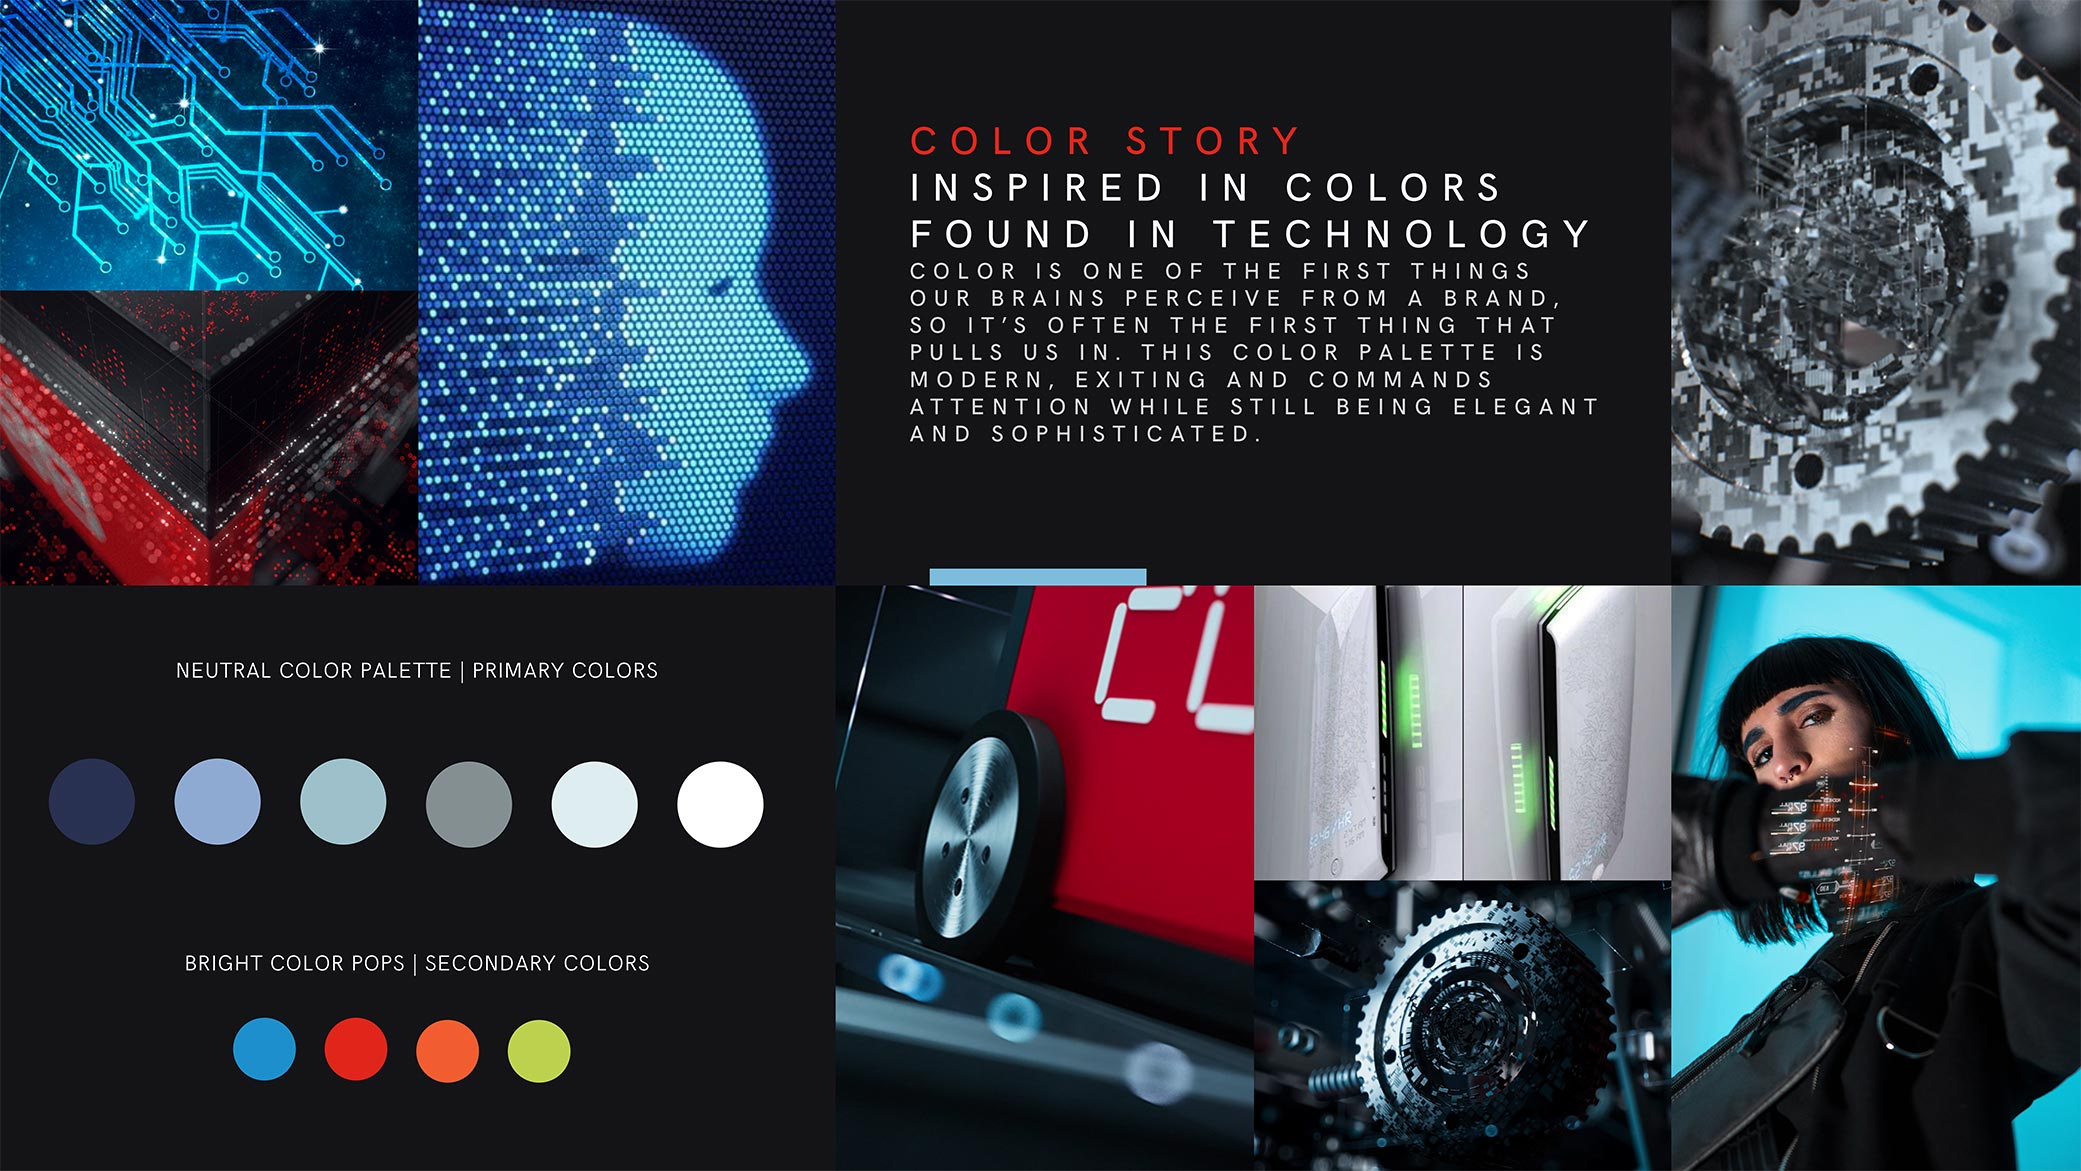 Quartile 3 Robotics branding idea board with bold tech-inspired colors and droid, gear, and circuitry design elements.